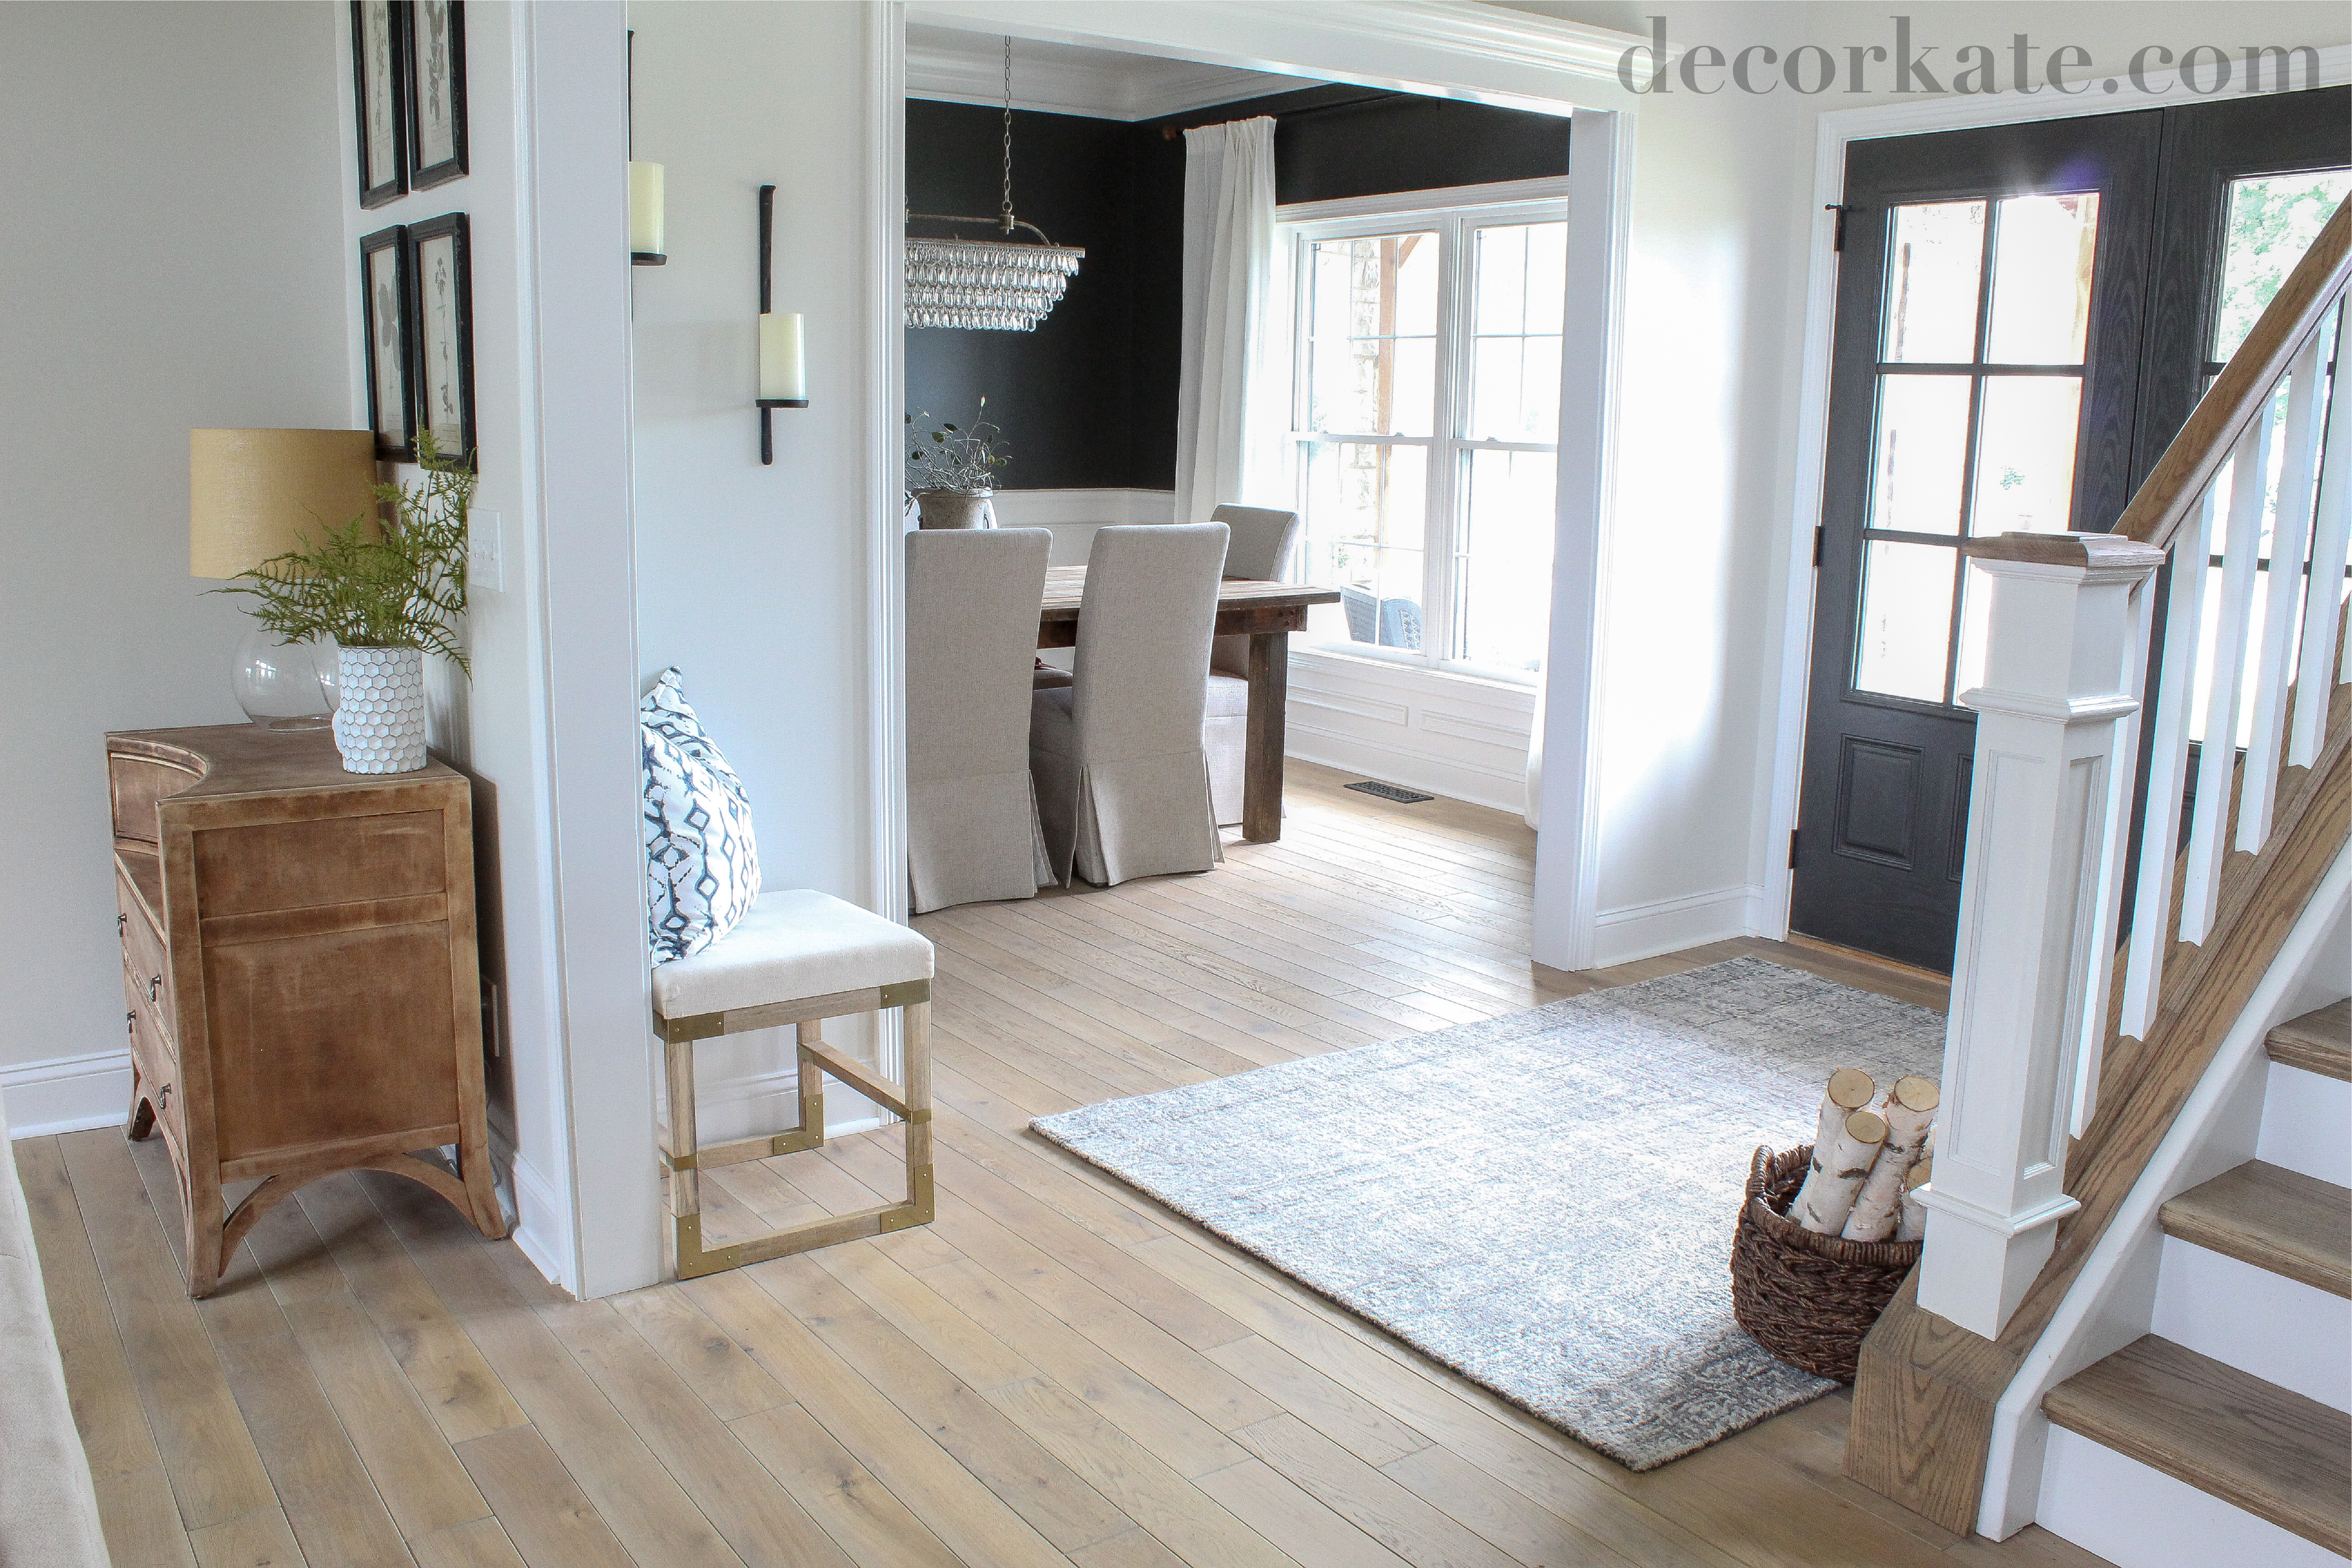 Entry and Formal Dining Room